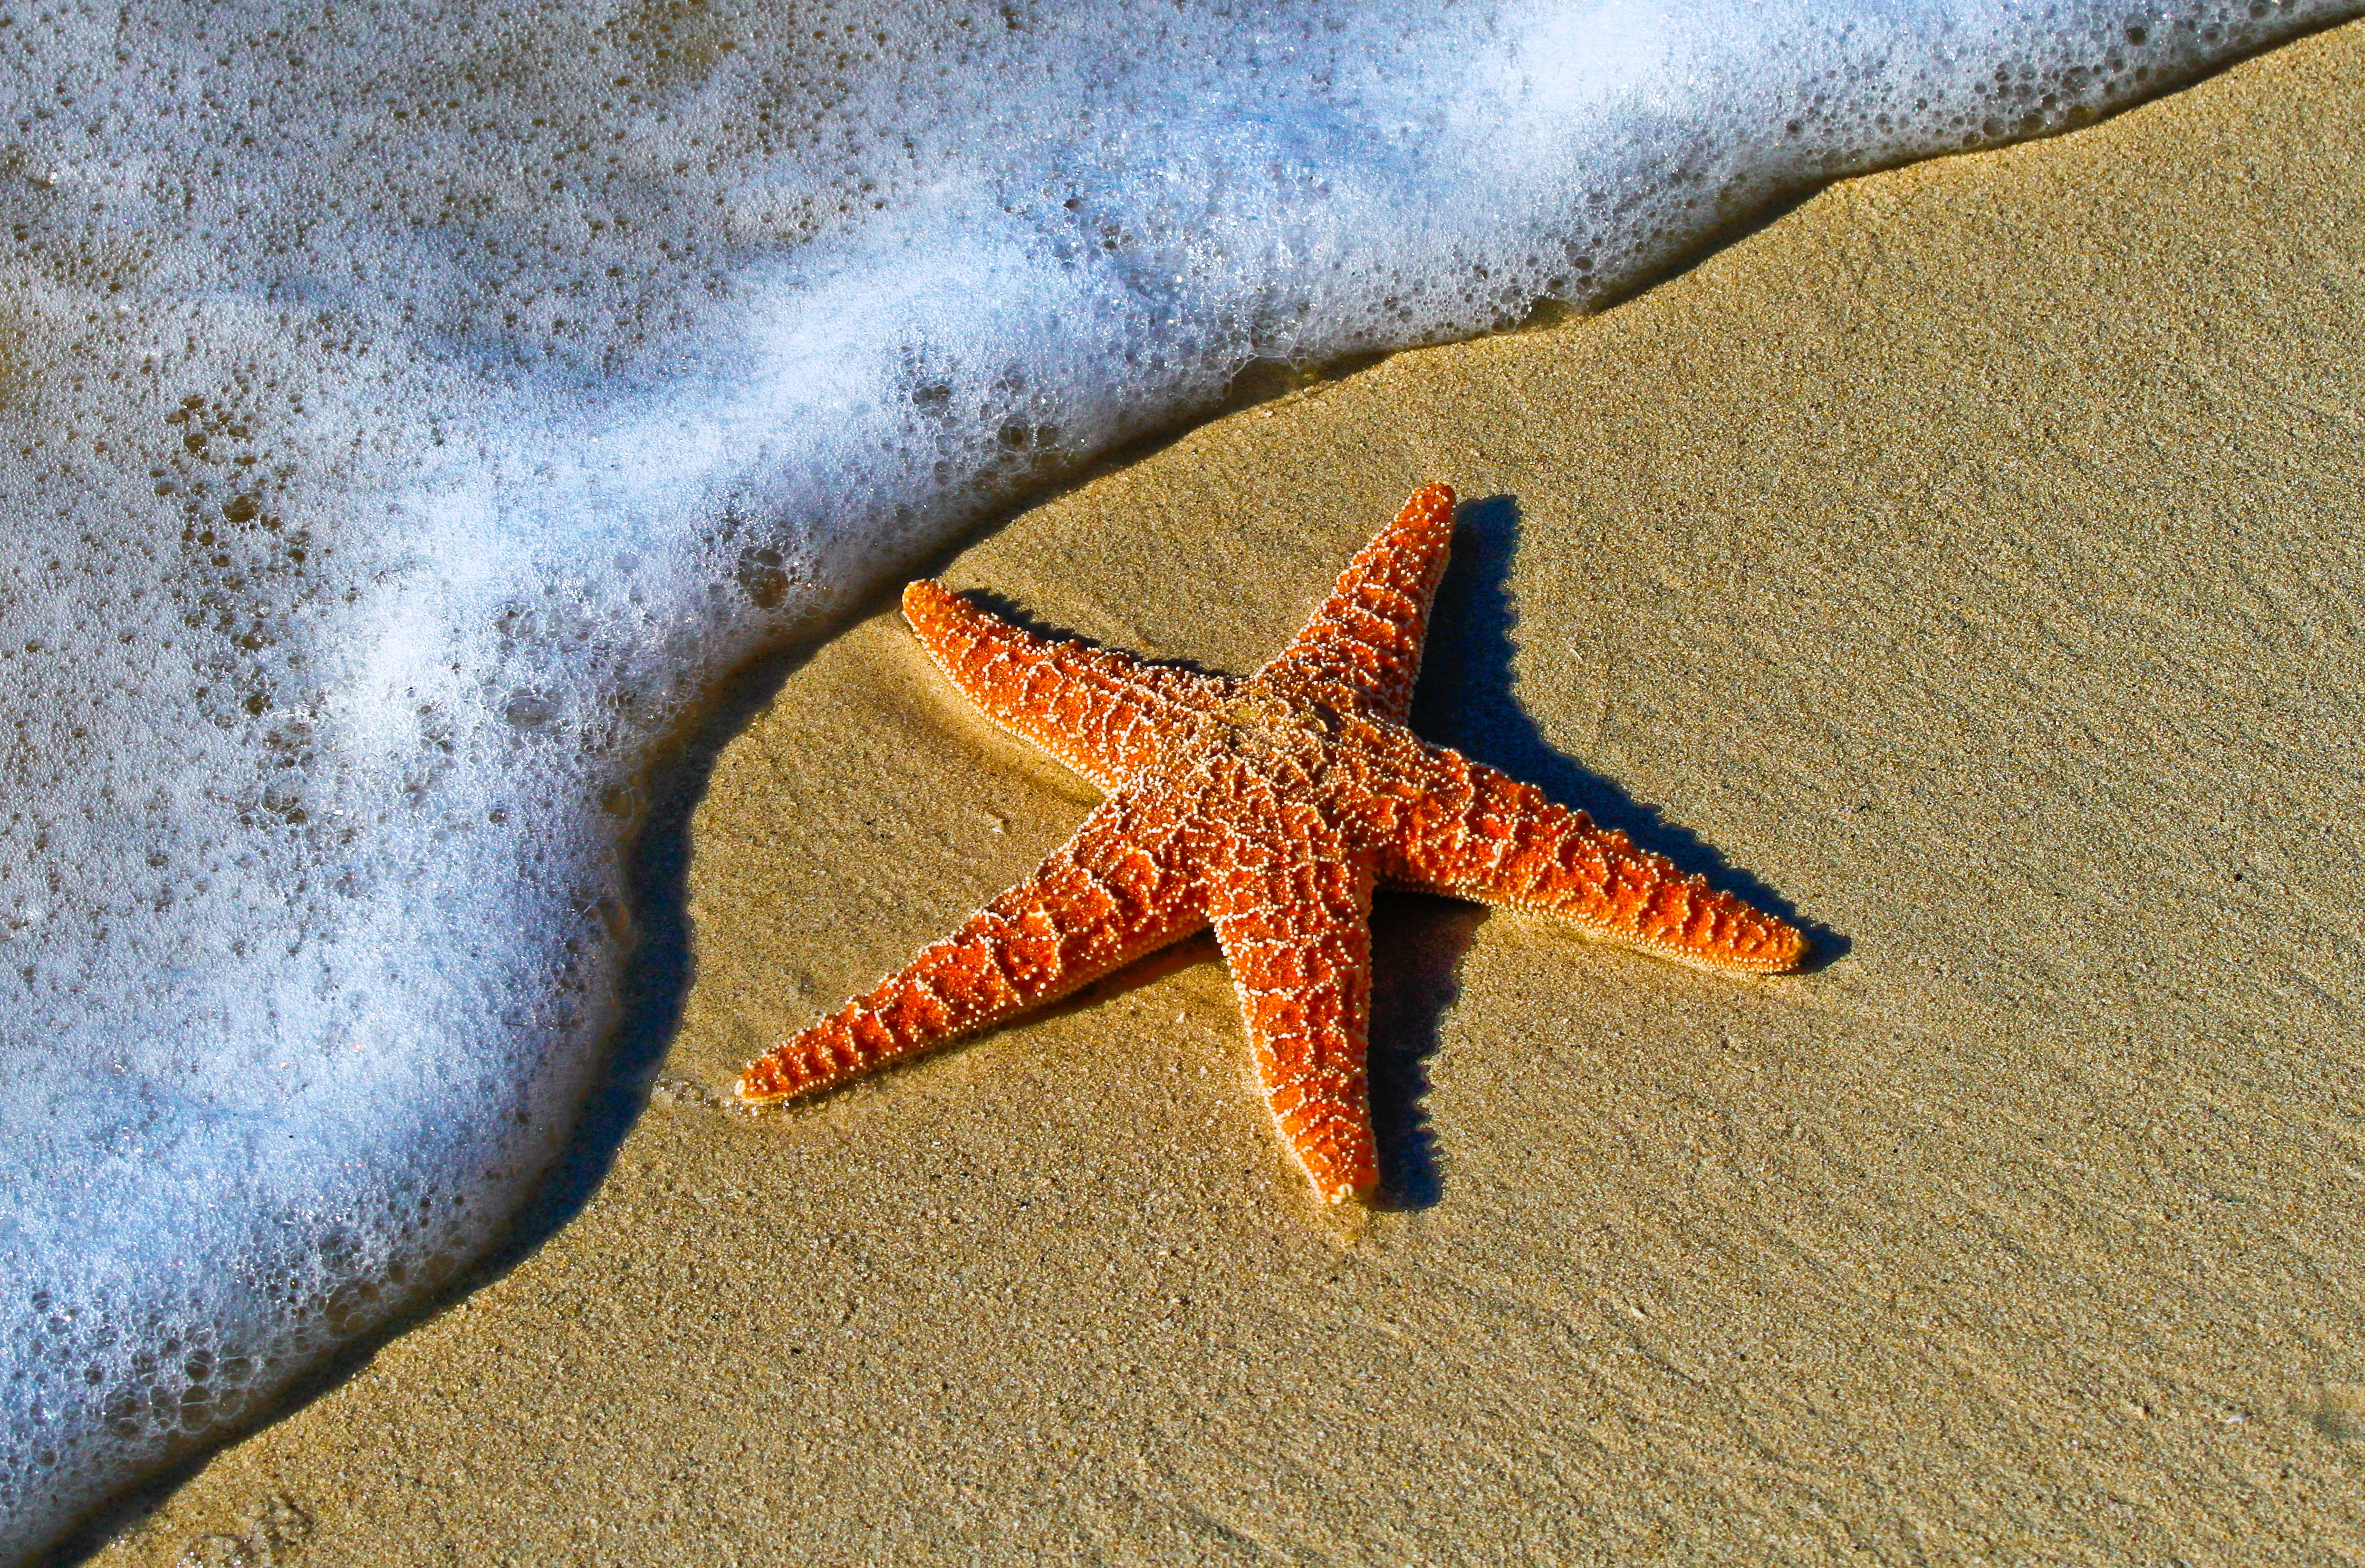 starfish on the beach next to bubbly ocean water